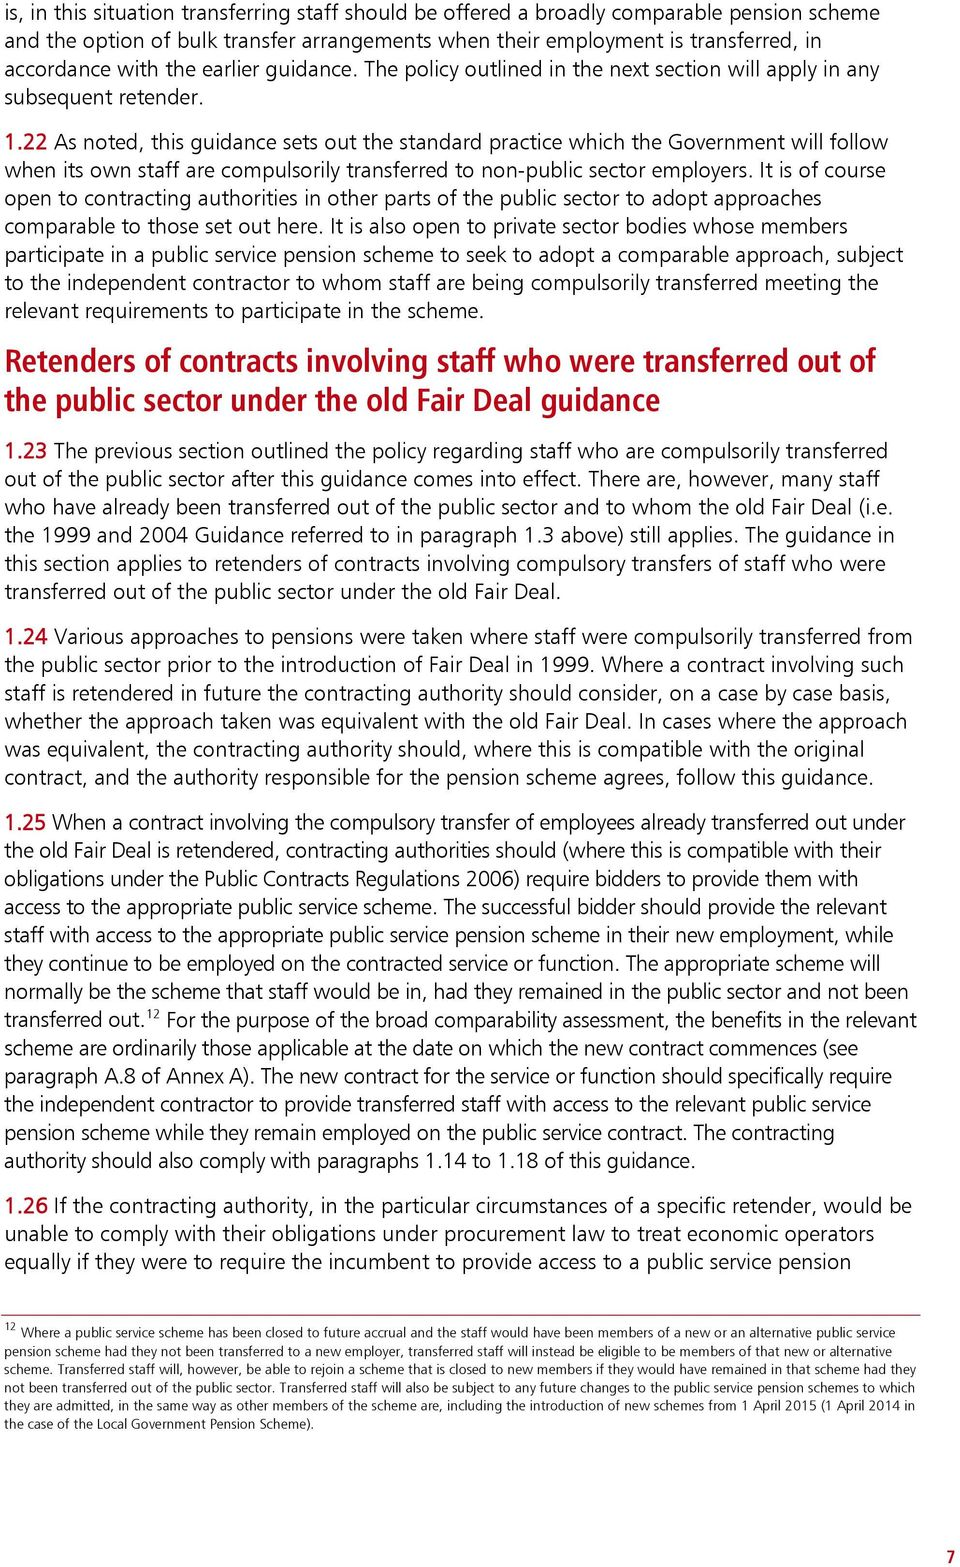 22 As noted, this guidance sets out the standard practice which the Government will follow when its own staff are compulsorily transferred to non-public sector employers.